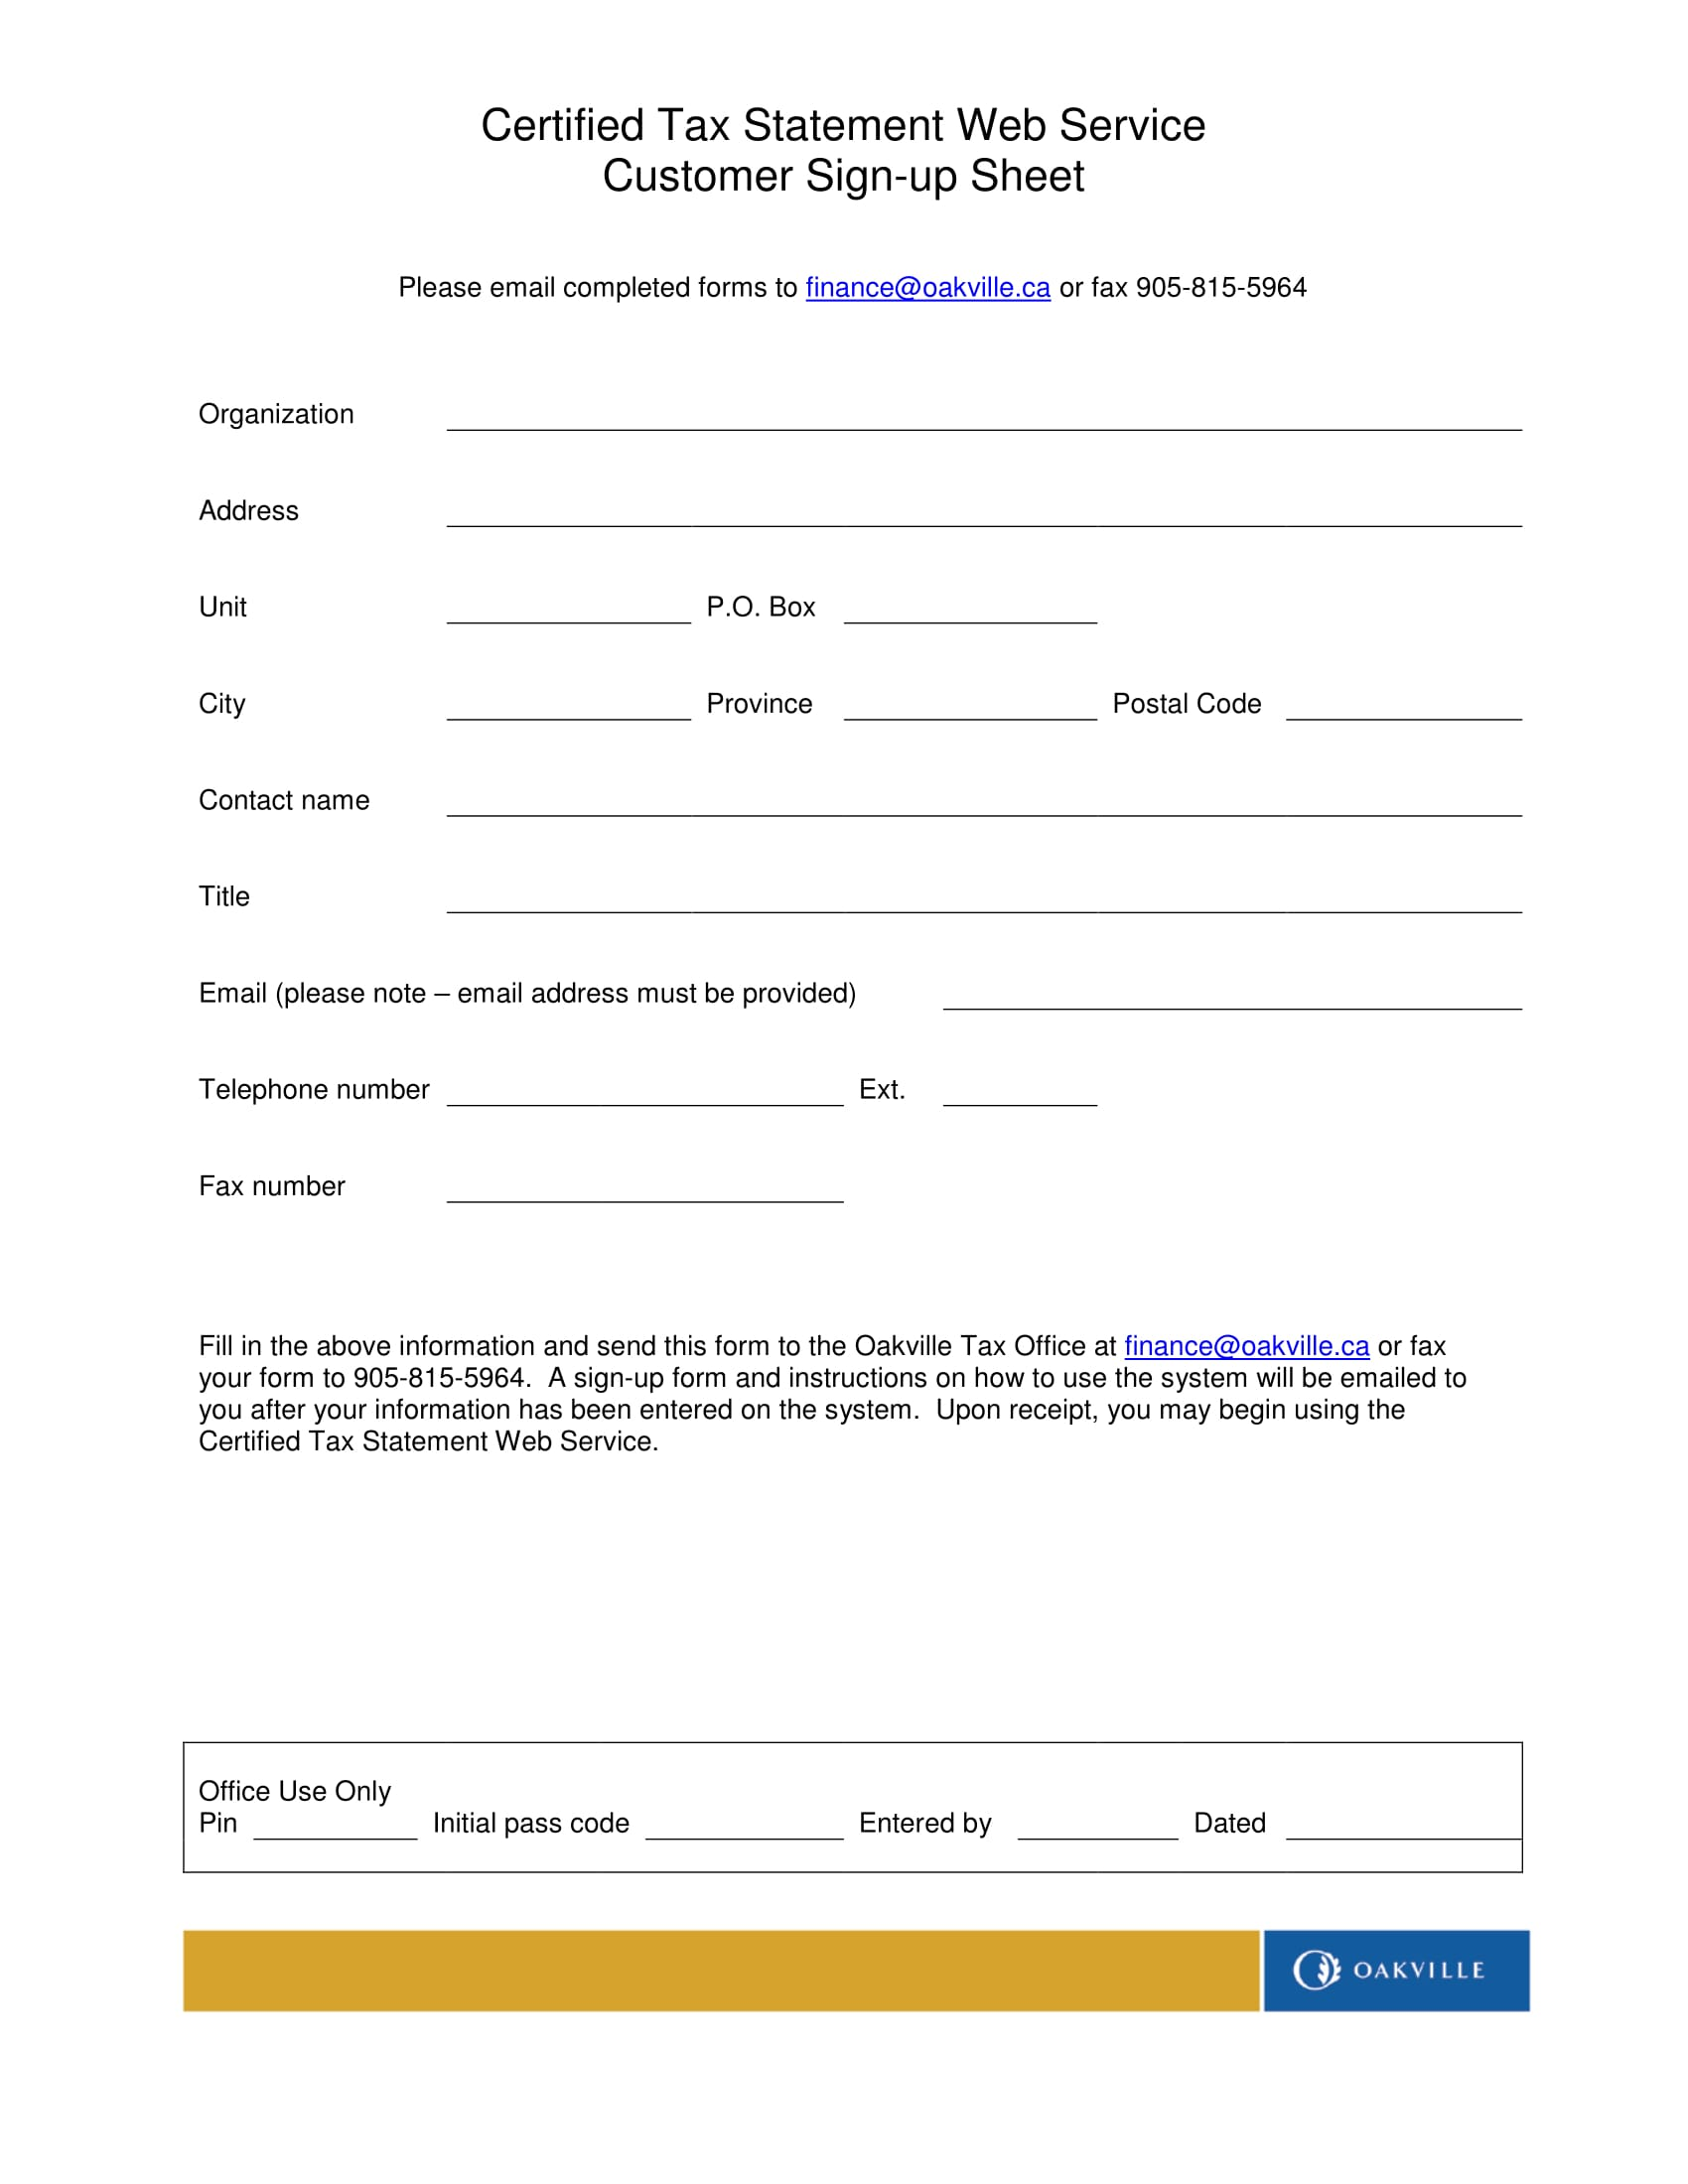 tax statement customer sign up form 1